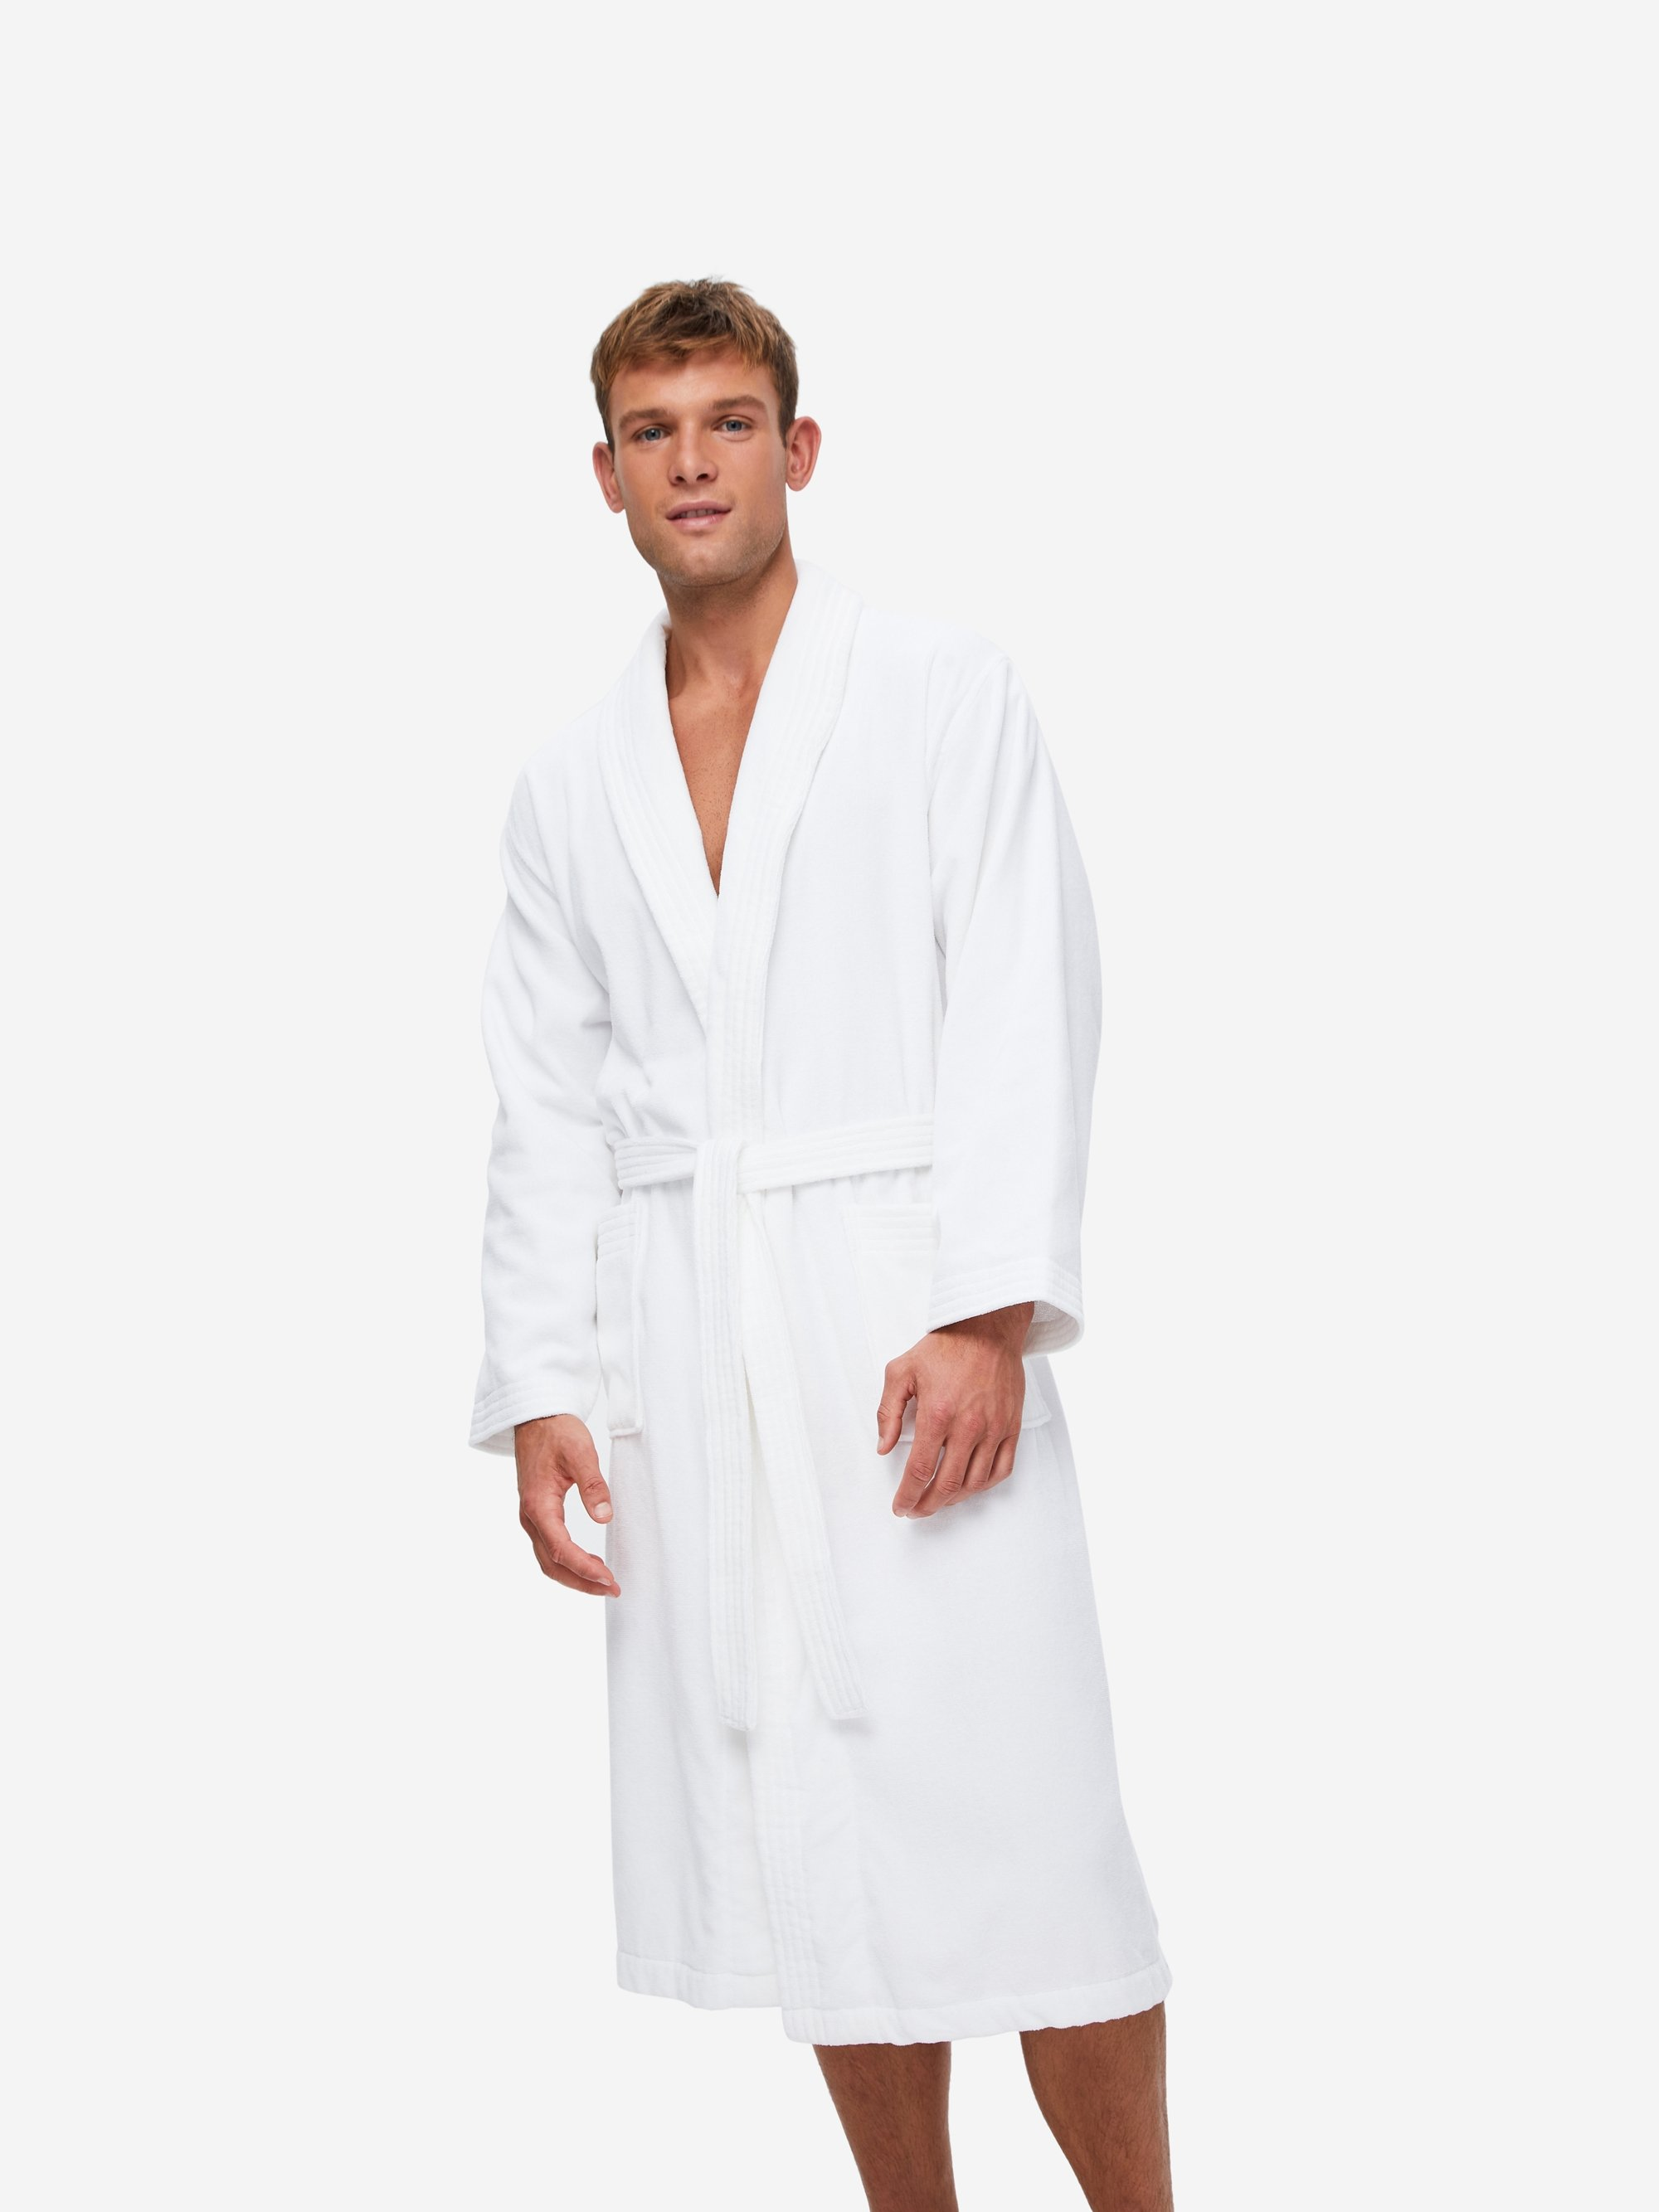 Men's Towelling Gown Triton 10 Cotton Velour White